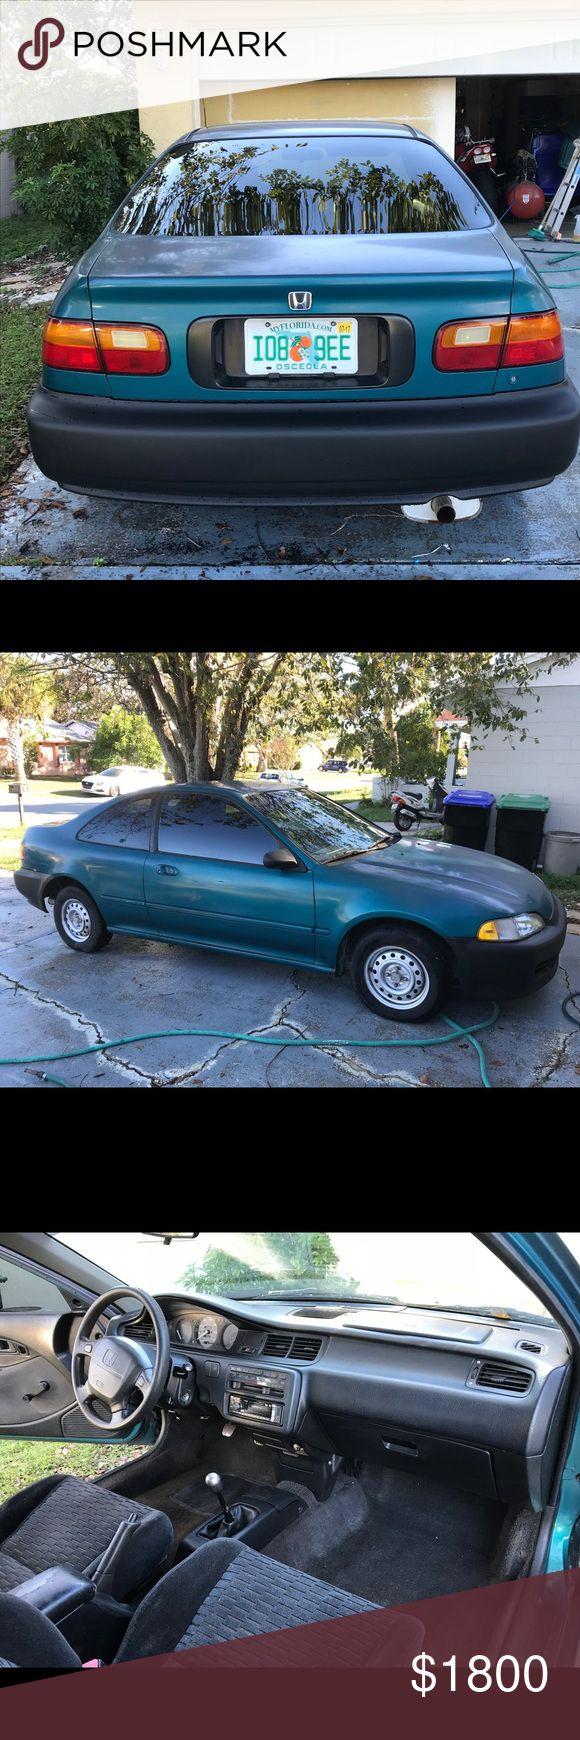 95 honda civic dx 95 honda civic dx , standard transmission , 4cylinder 1.6 liter . Other